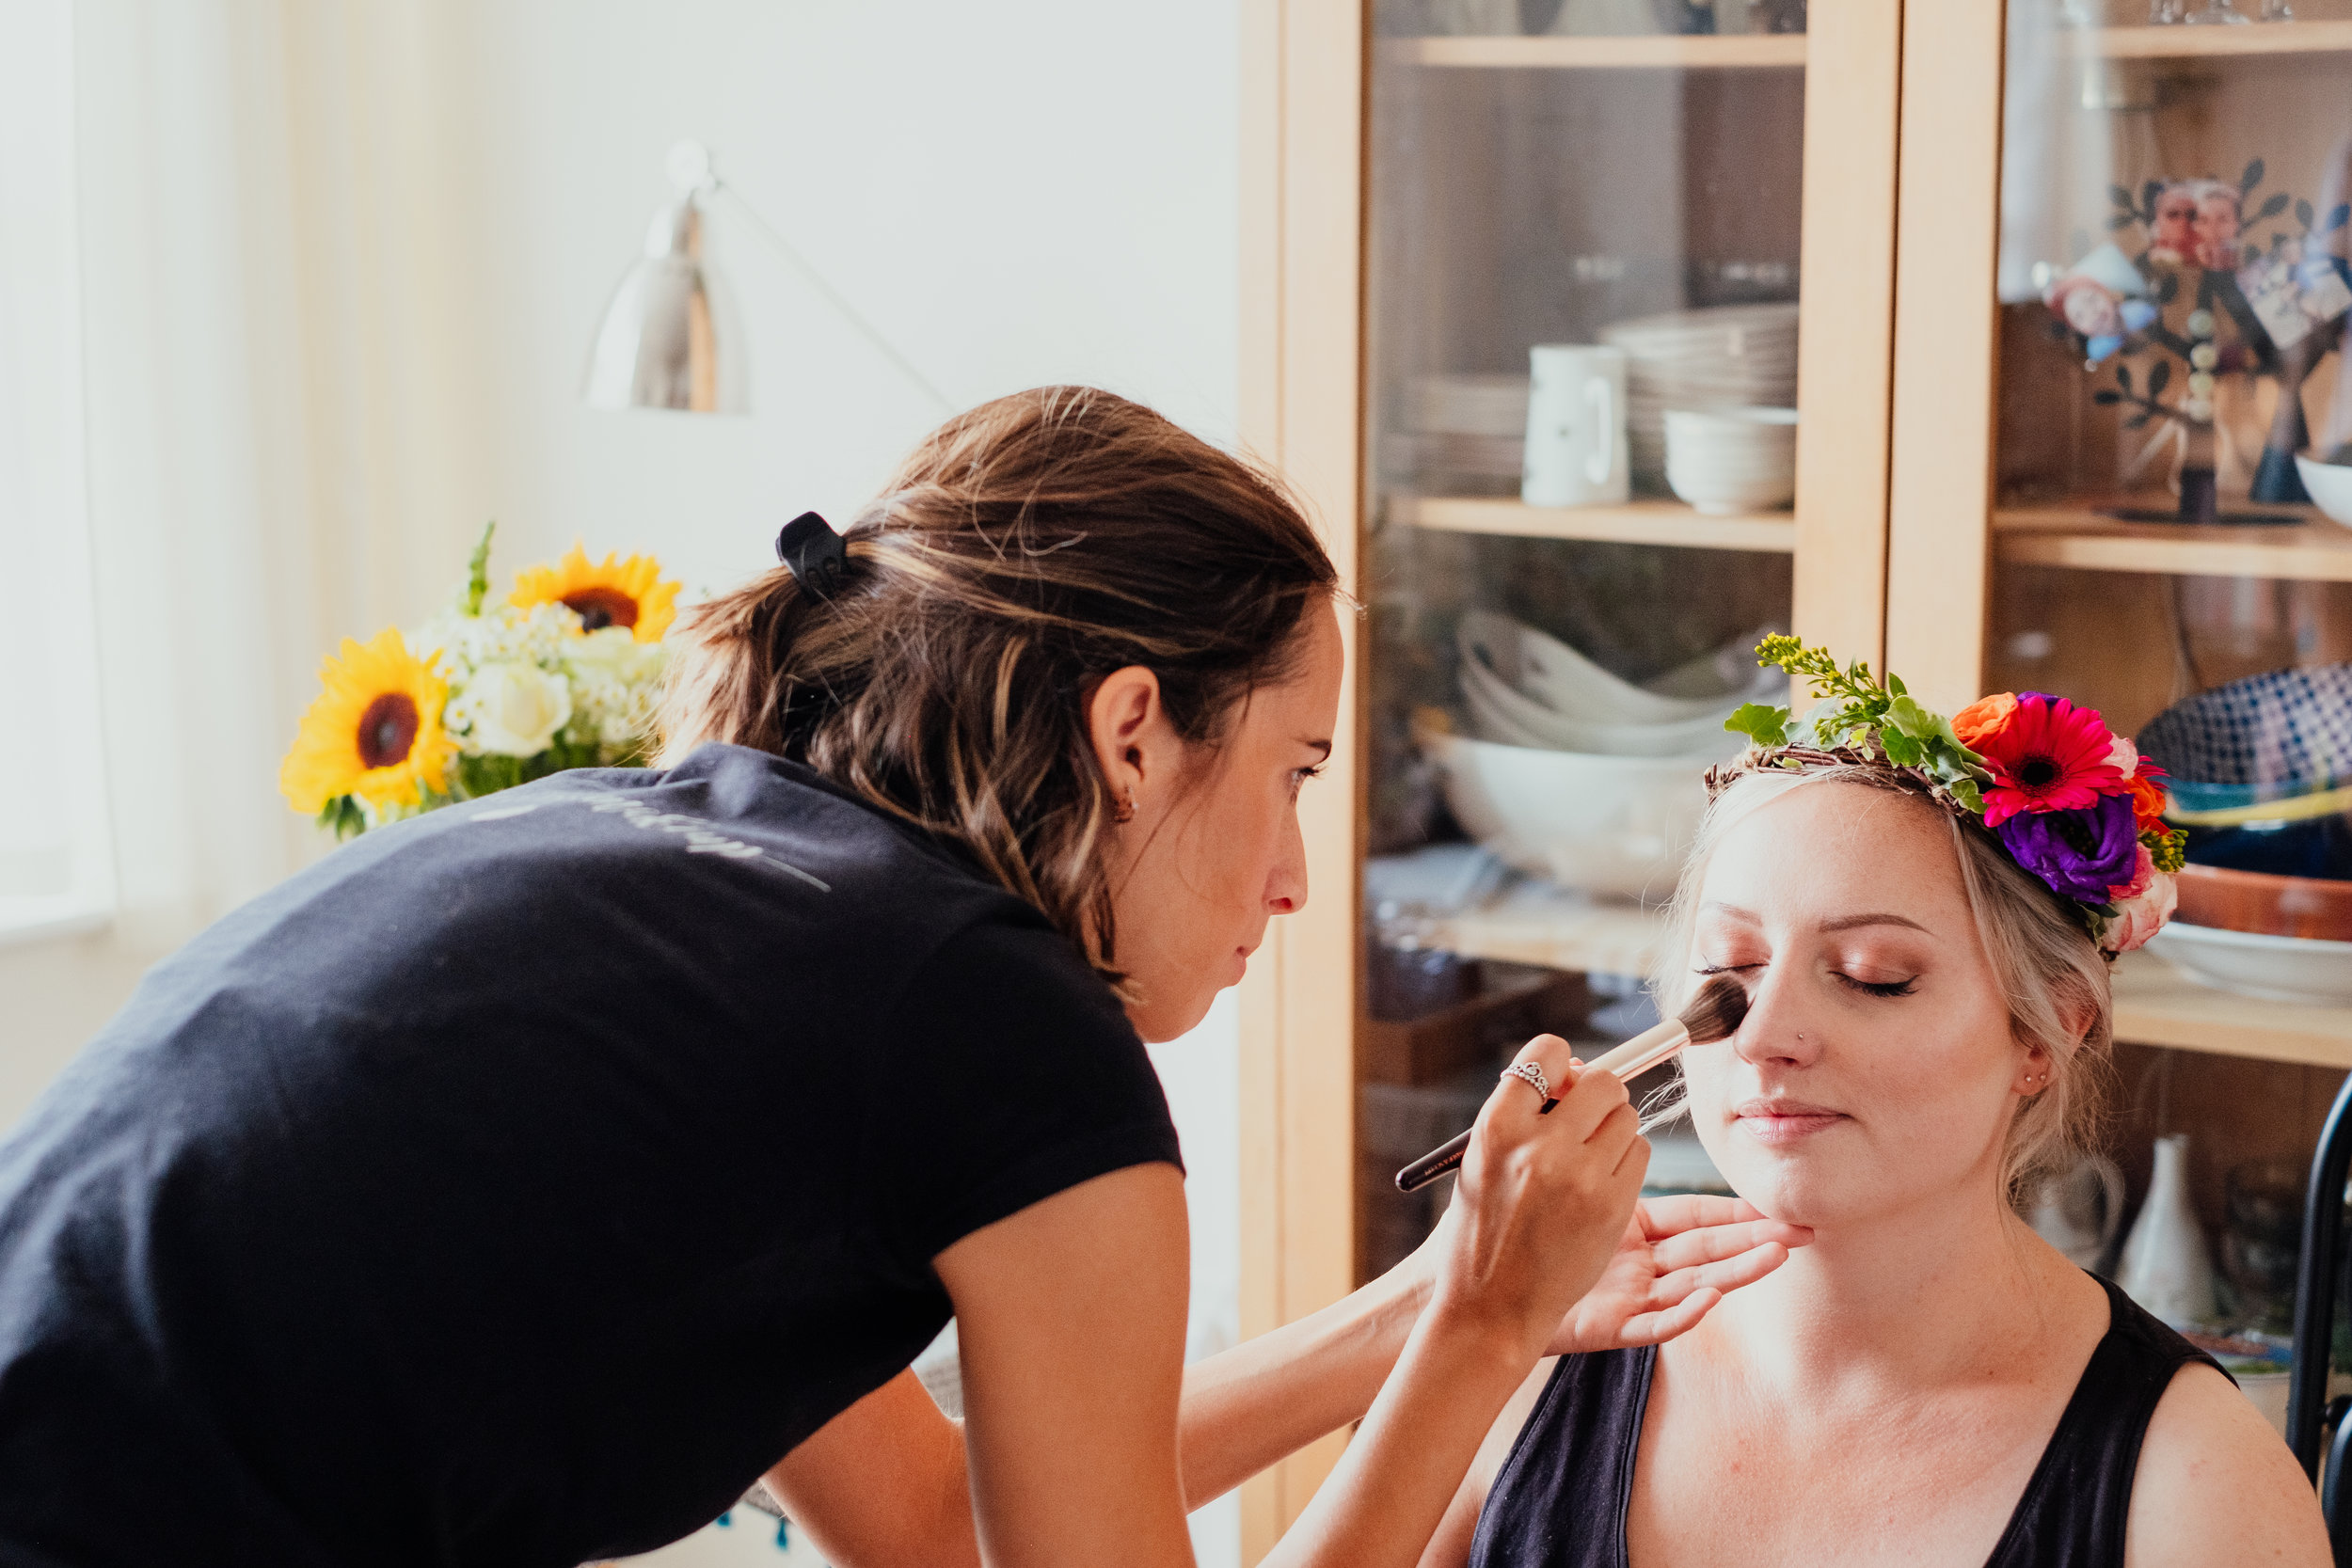 Vegan and cruelty free make up artist Tia Bliss applies vegan make up to boho bride